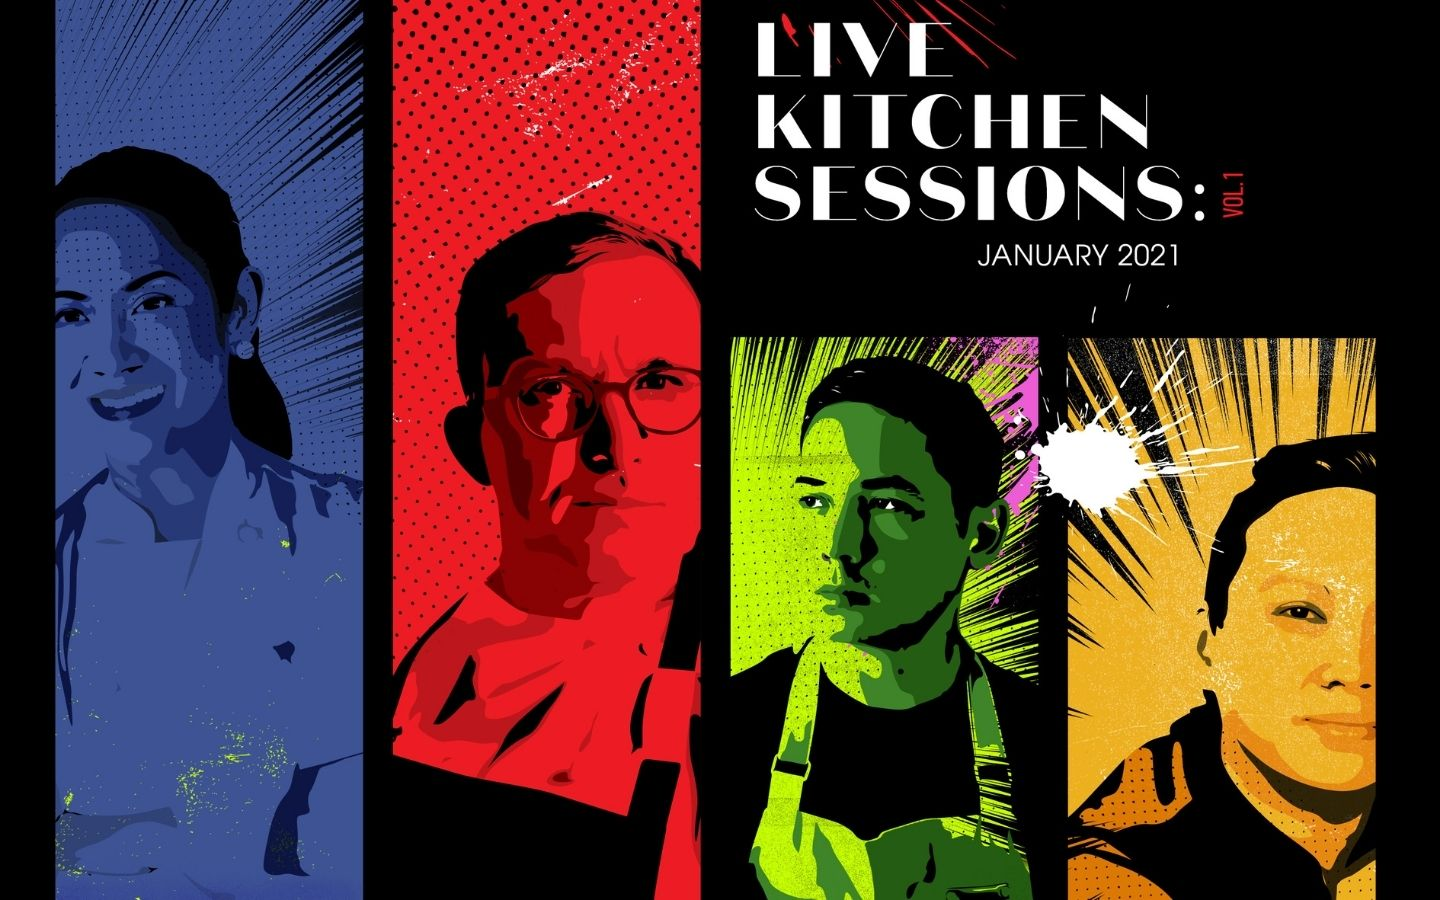 5 Chefs, 4 Sessions